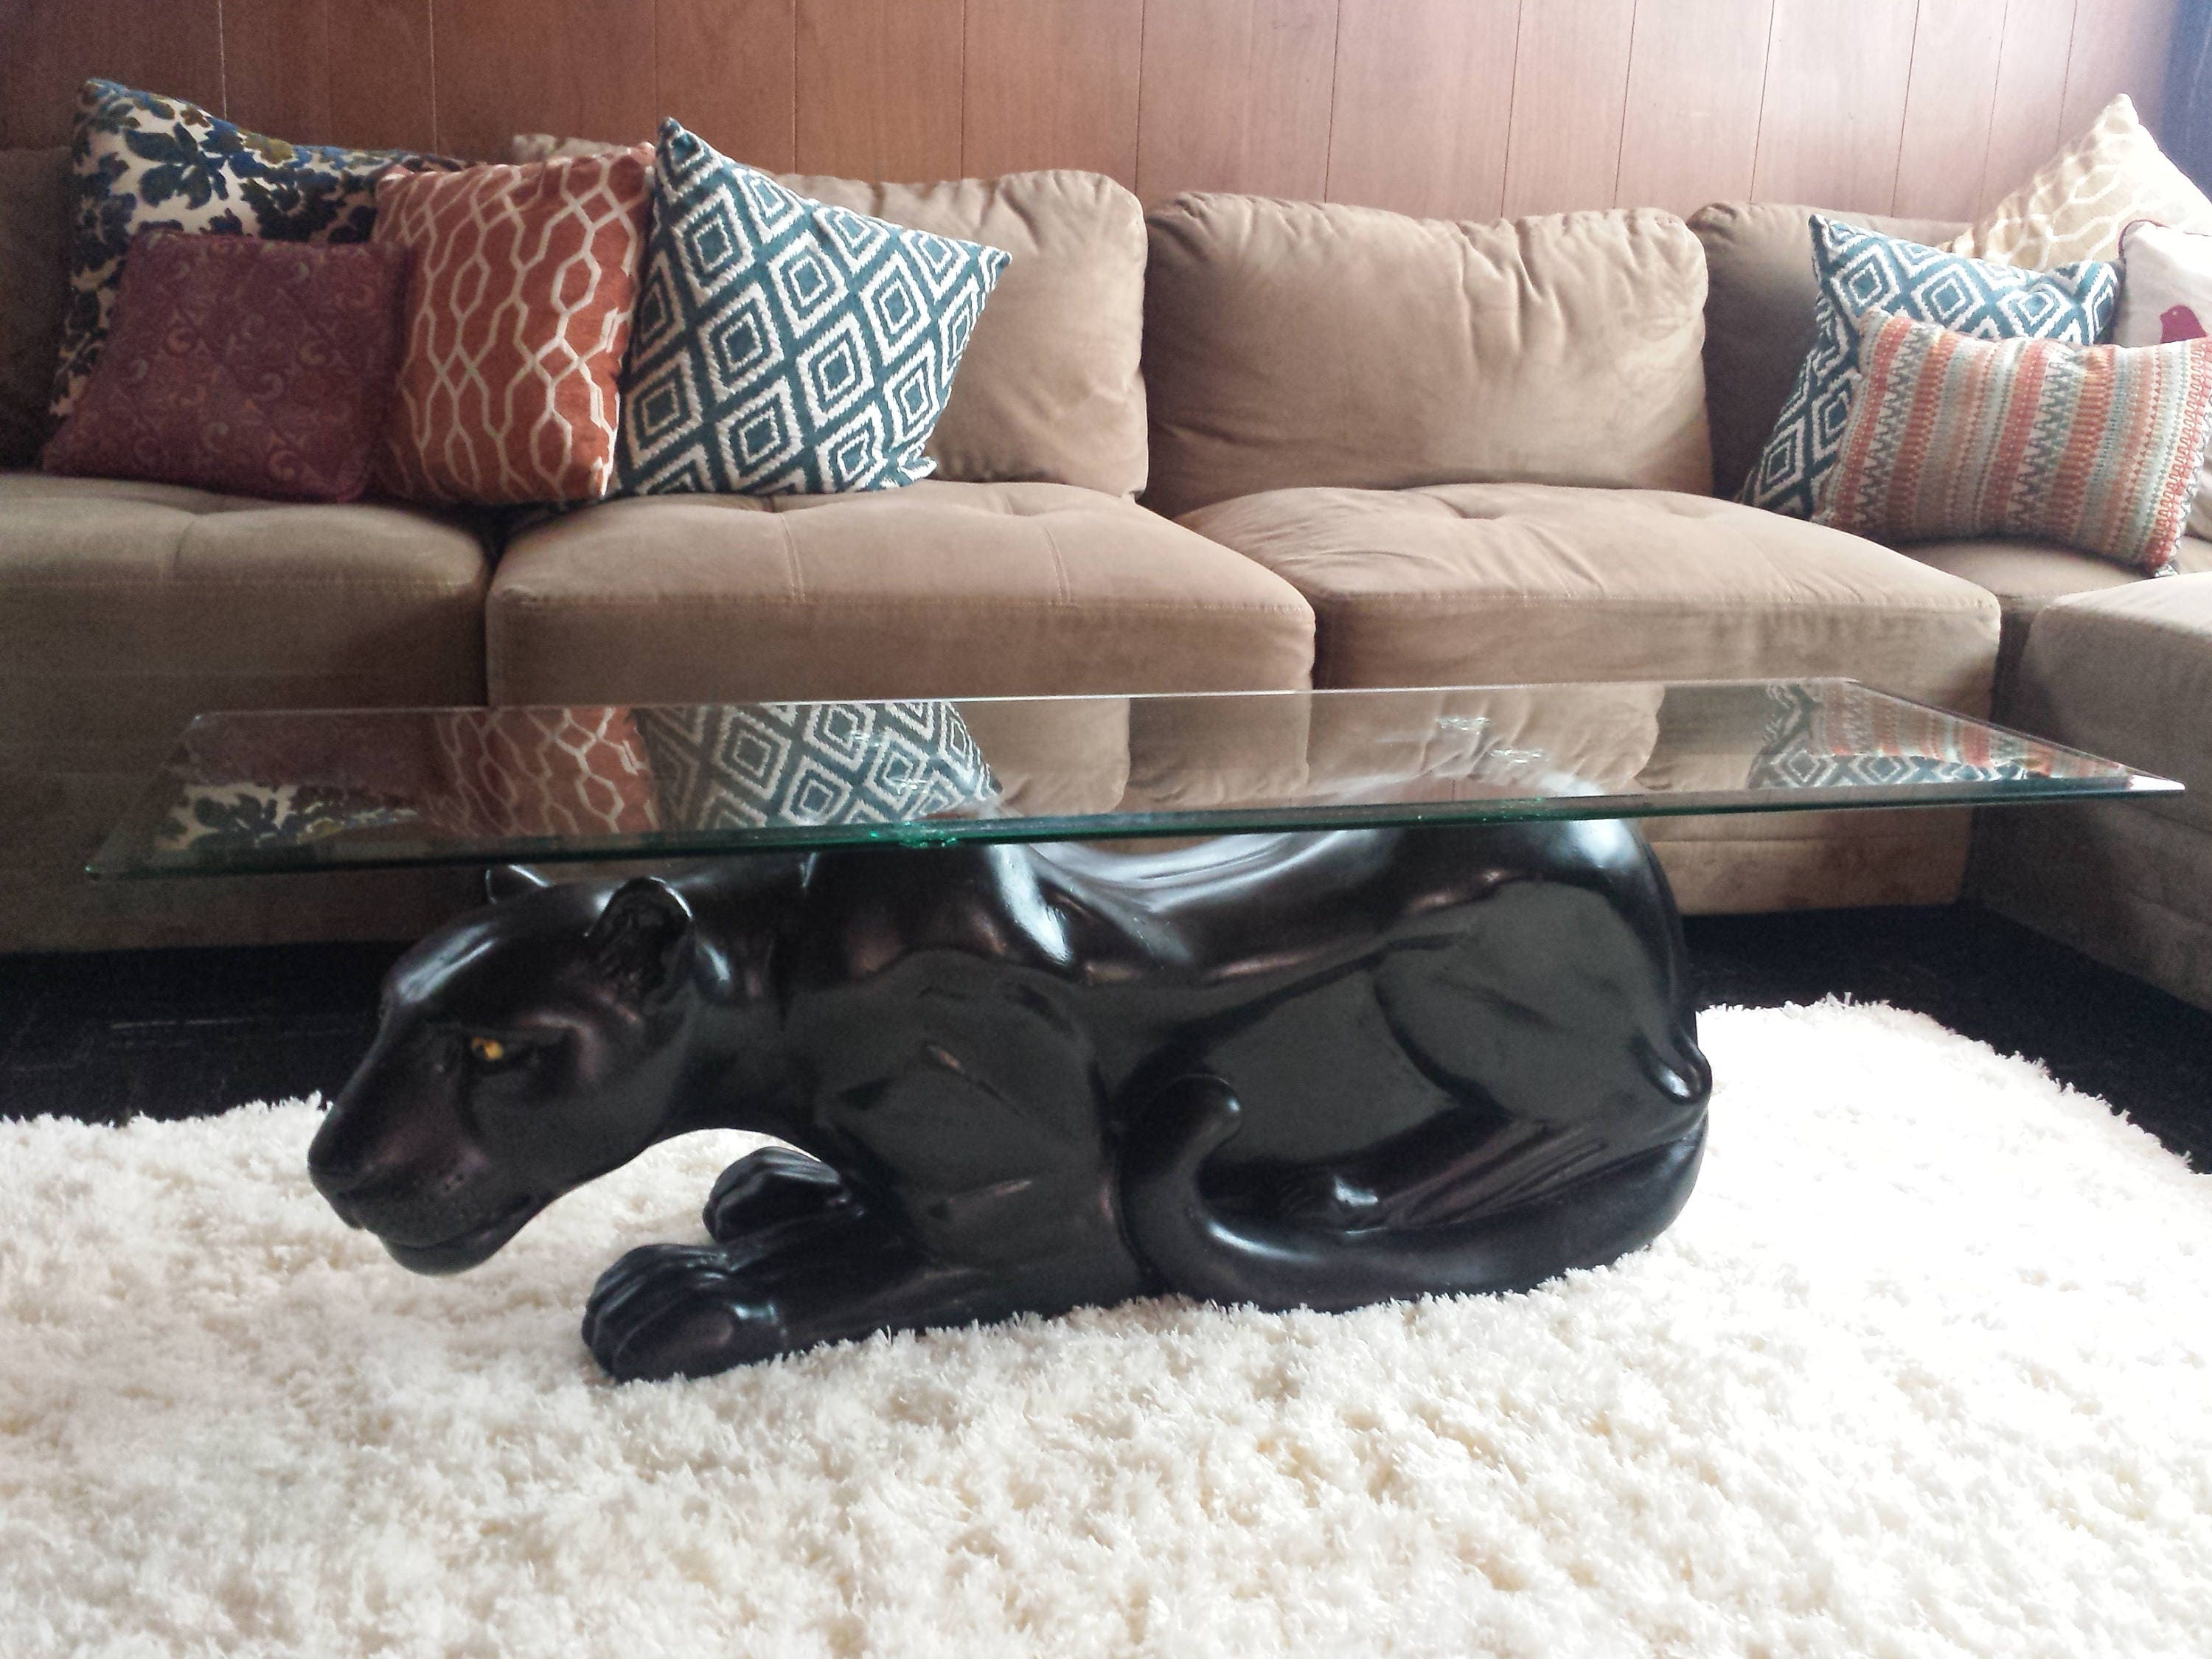 Mid century black panther coffee table with glass top 41 description vintage mid century black panther coffee table geotapseo Gallery